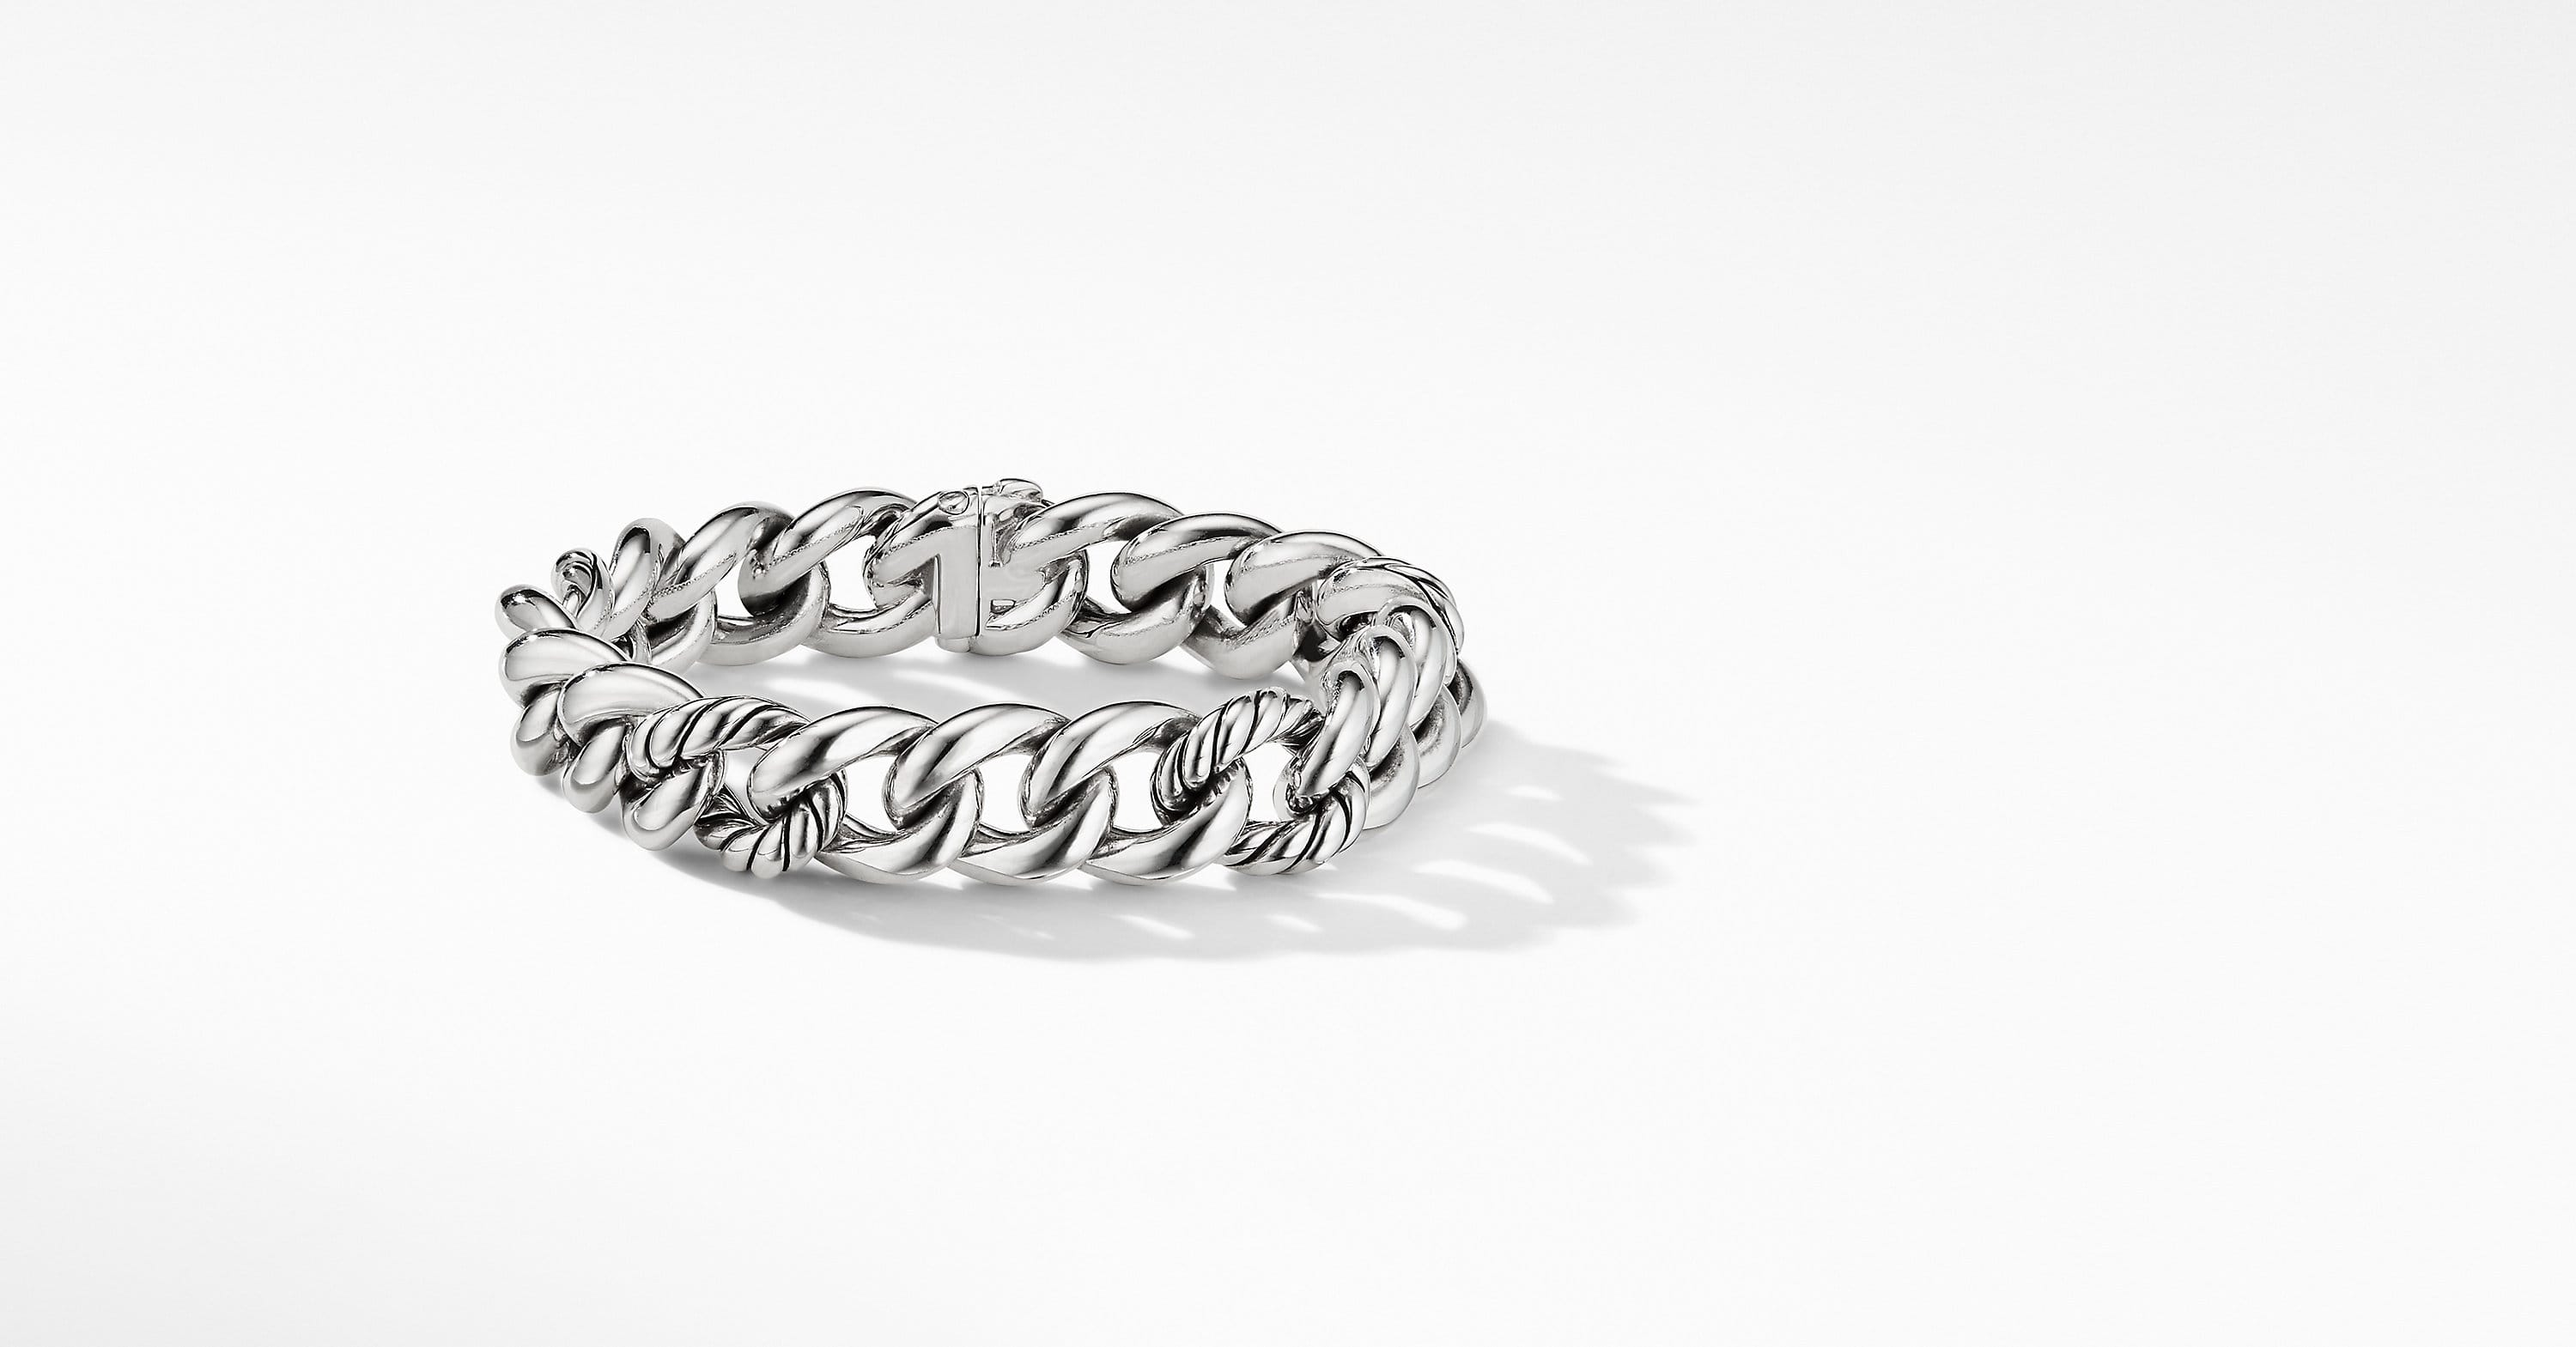 Curb Chain Bracelet, 13.5mm